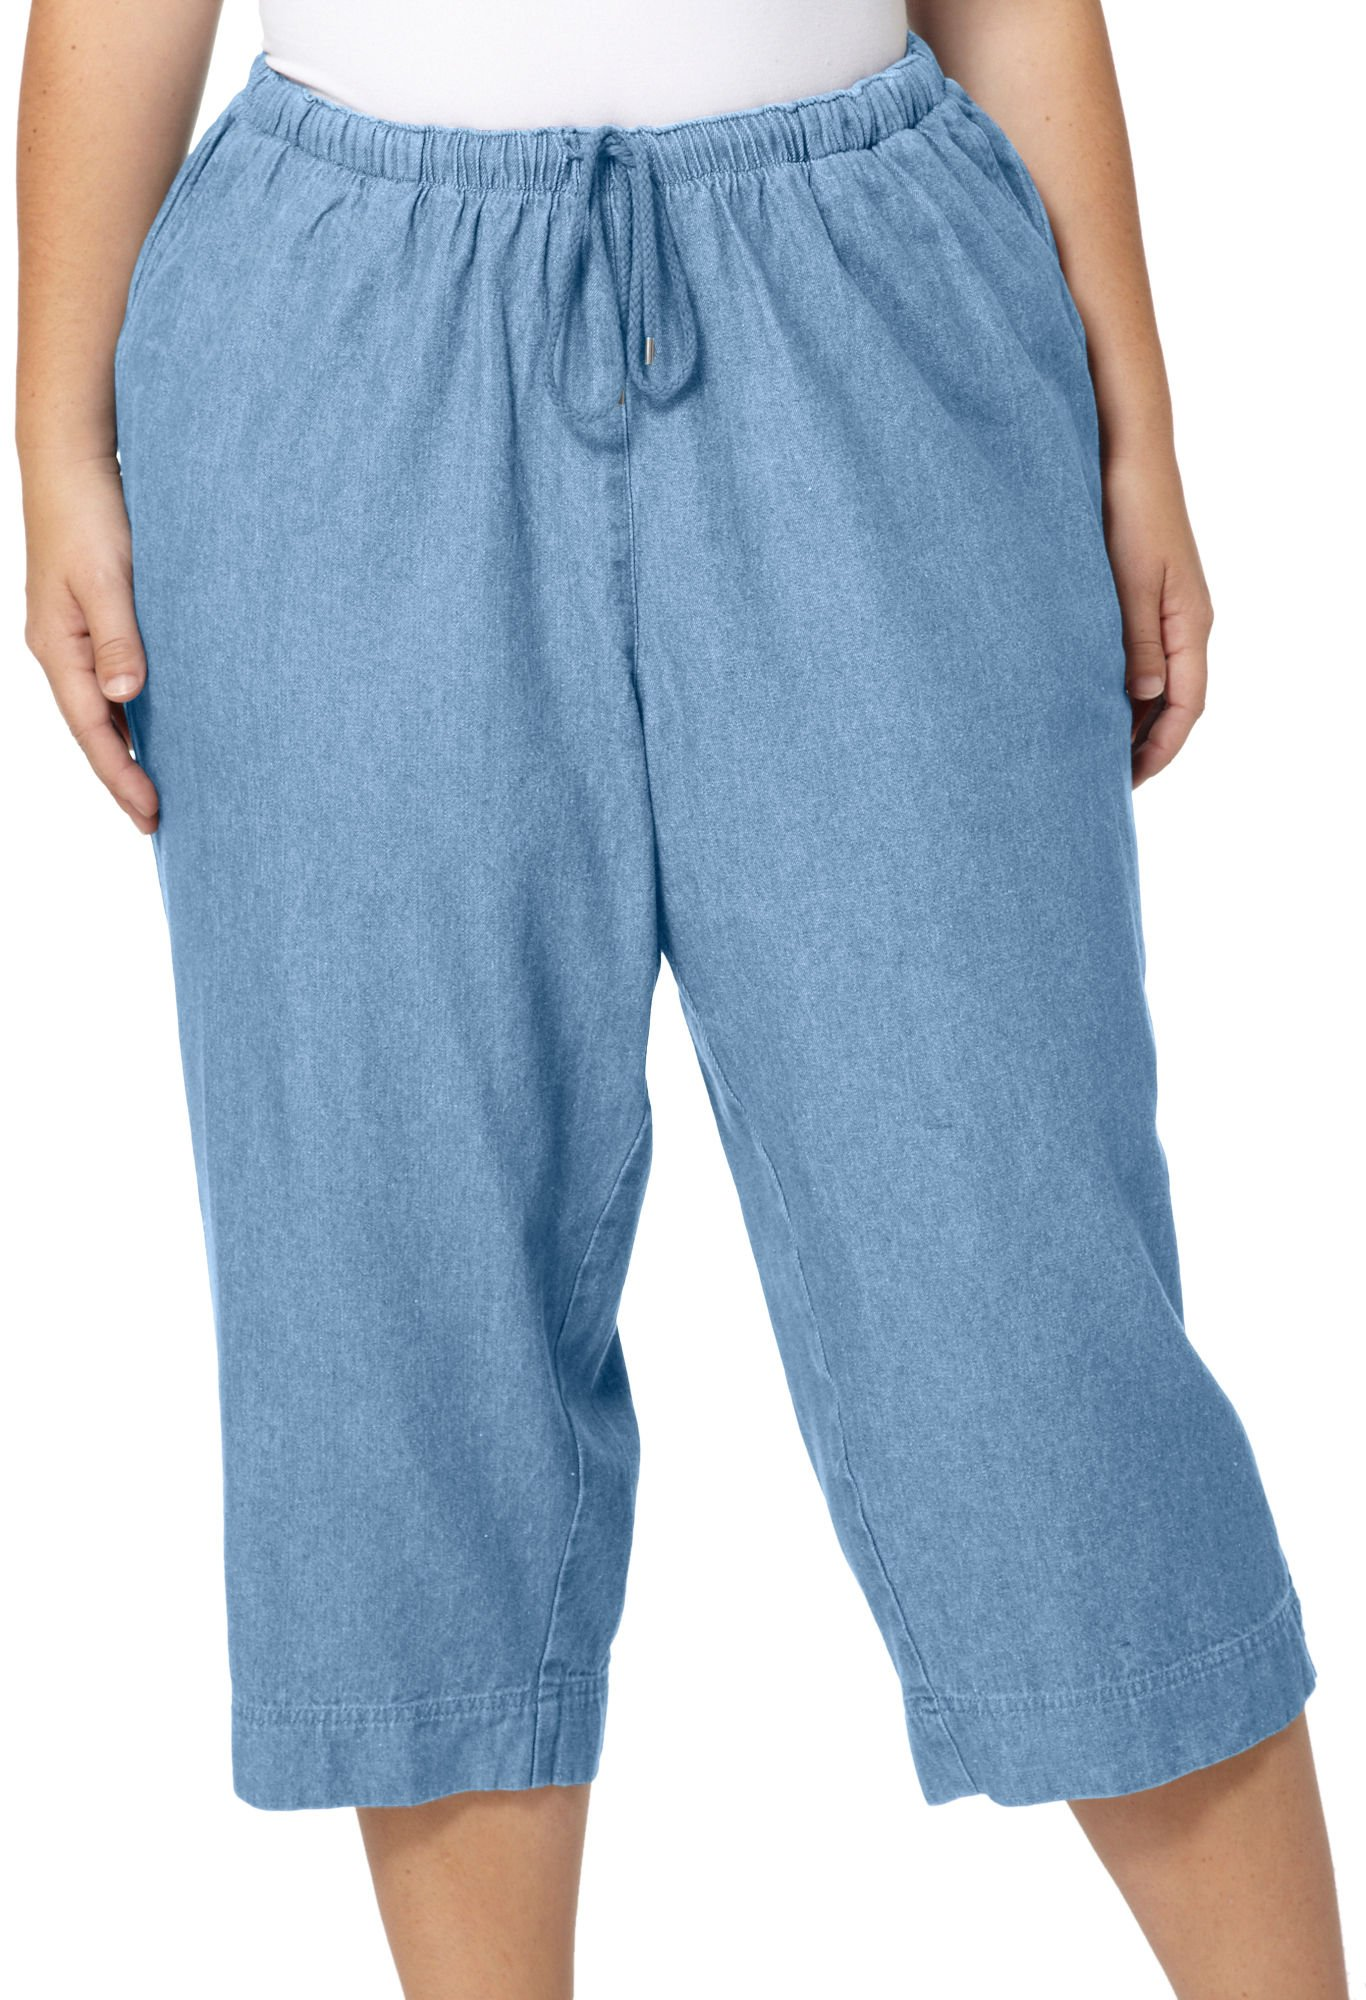 Coral Bay Plus Pull On Twill Drawstring Capris 2X Light chambray by Coral Bay (Image #1)